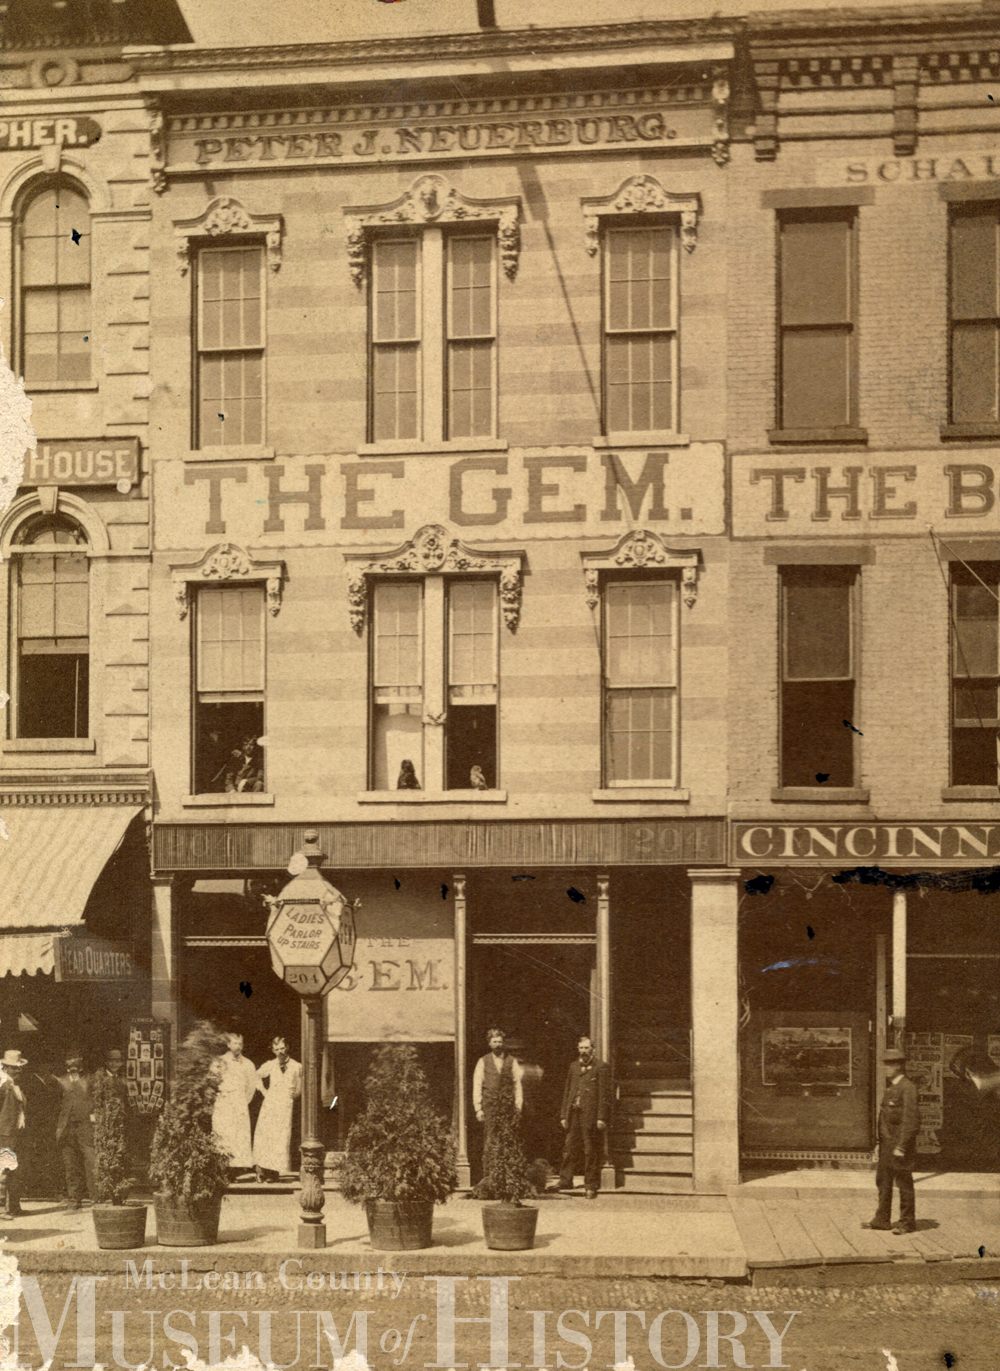 The Gem Saloon, 1880.